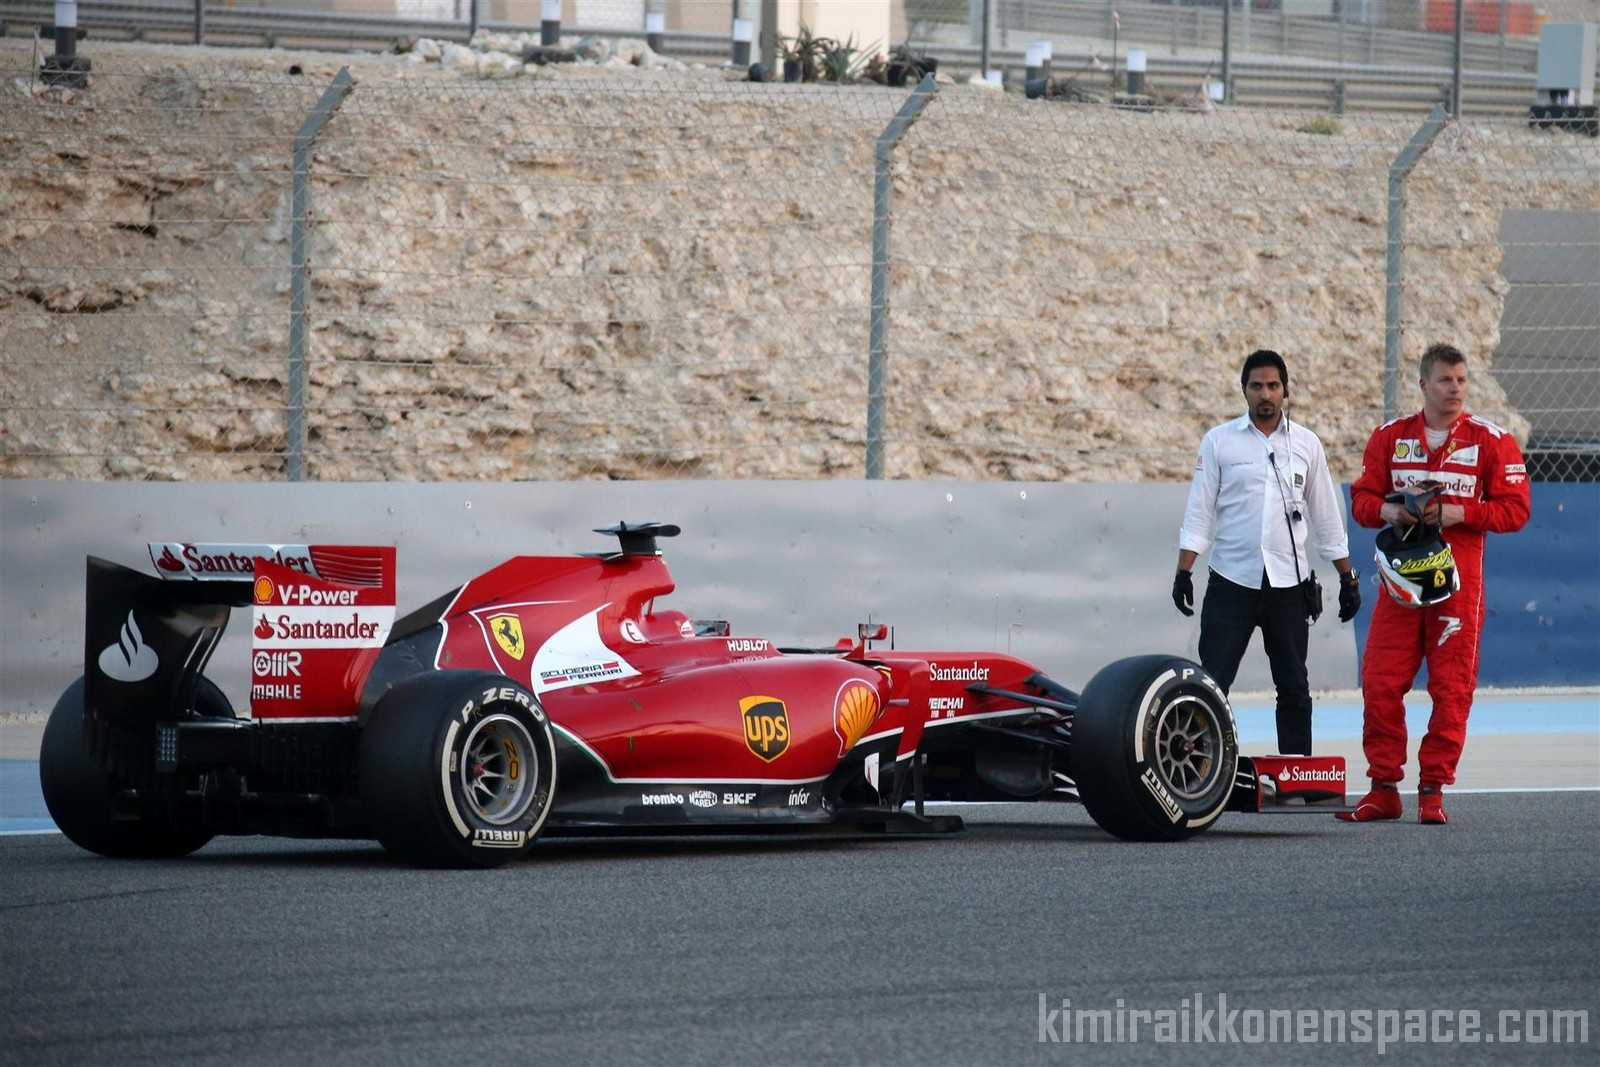 Kevin Henkes Quote Today Was A Difficult Day Tomorrow: KIMI RÄIKKÖNEN SPACE